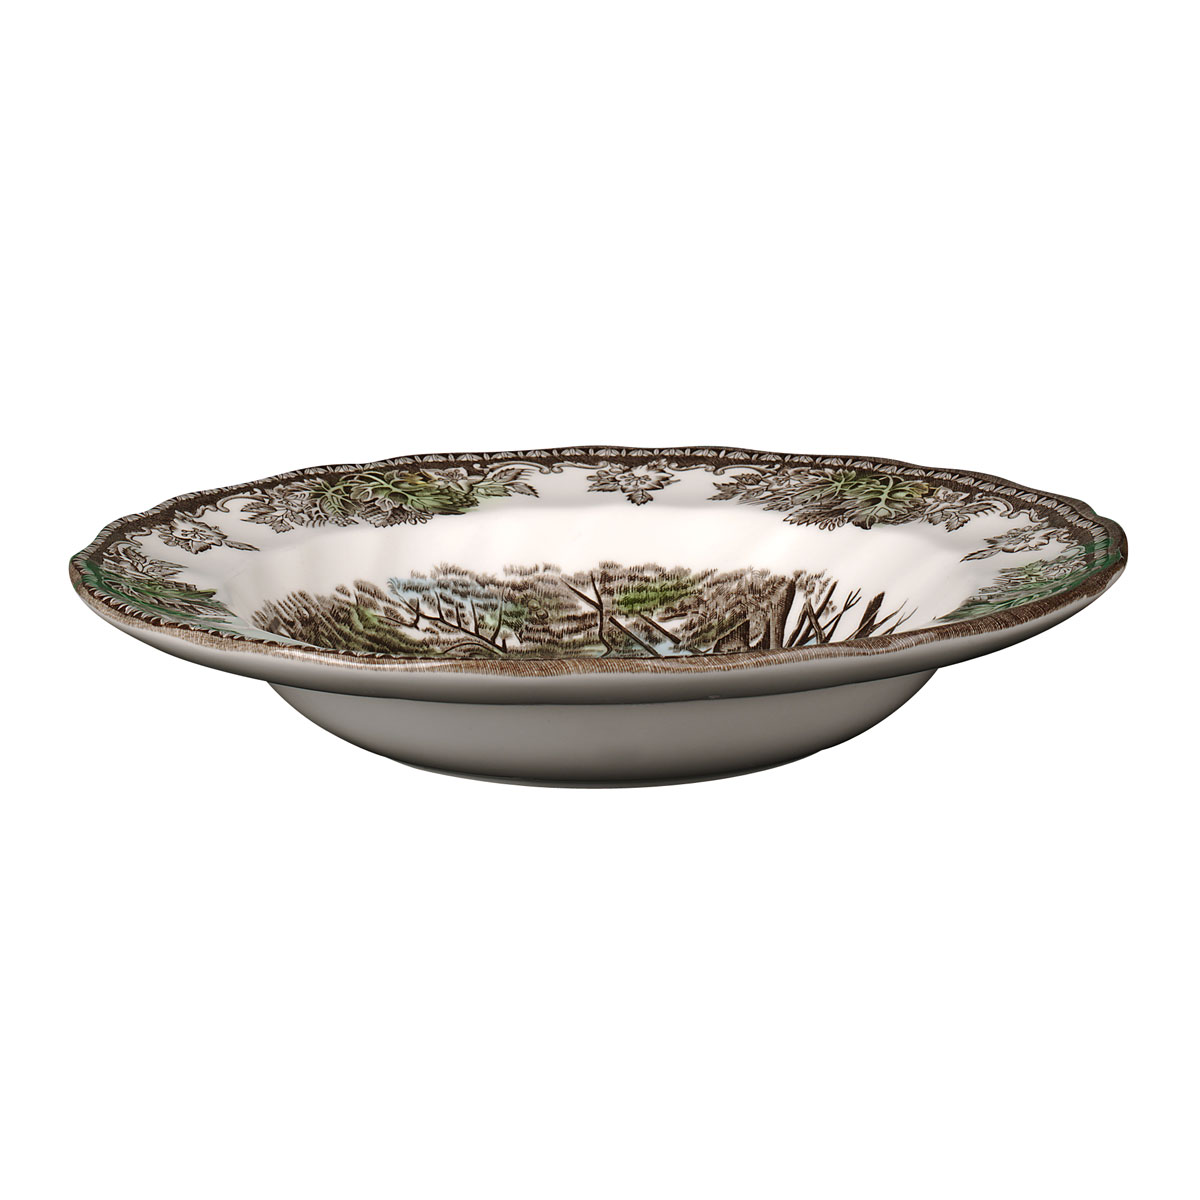 "Johnson Brothers Friendly Village Rim Soup, Pasta Bowl 8.5"", Single"